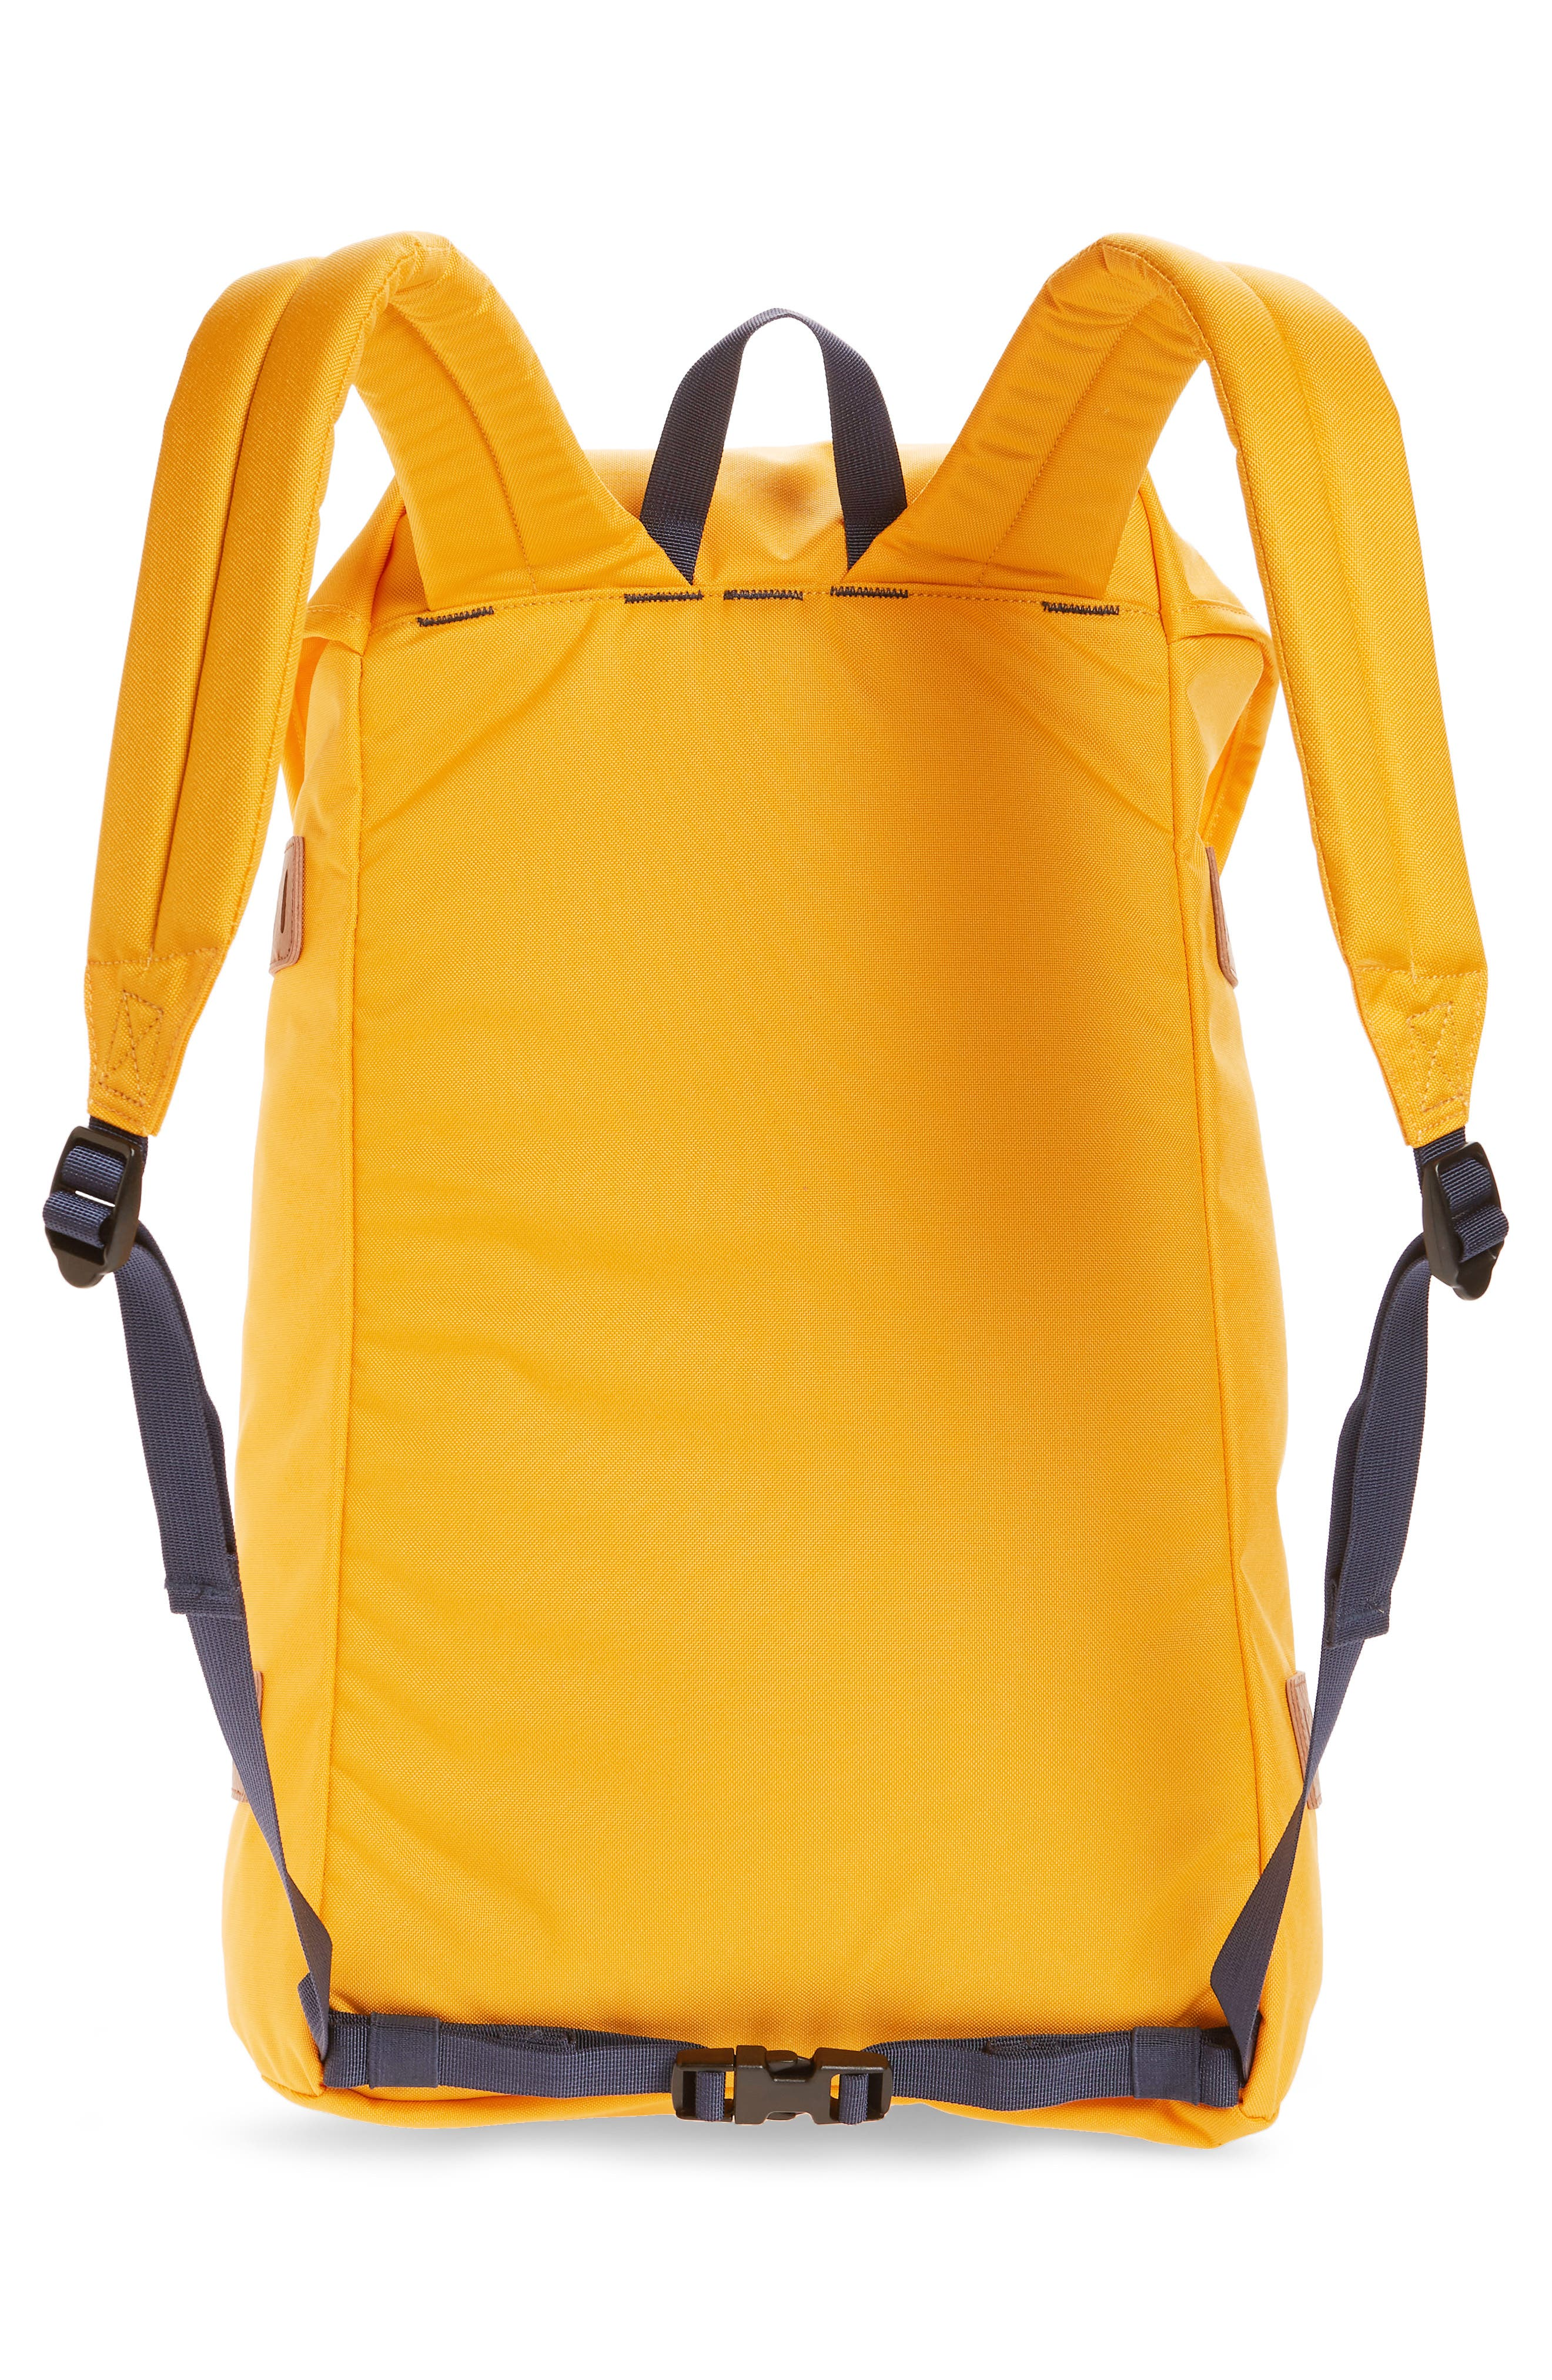 Arbor 26-Liter Backpack,                             Alternate thumbnail 3, color,                             Rugby Yellow